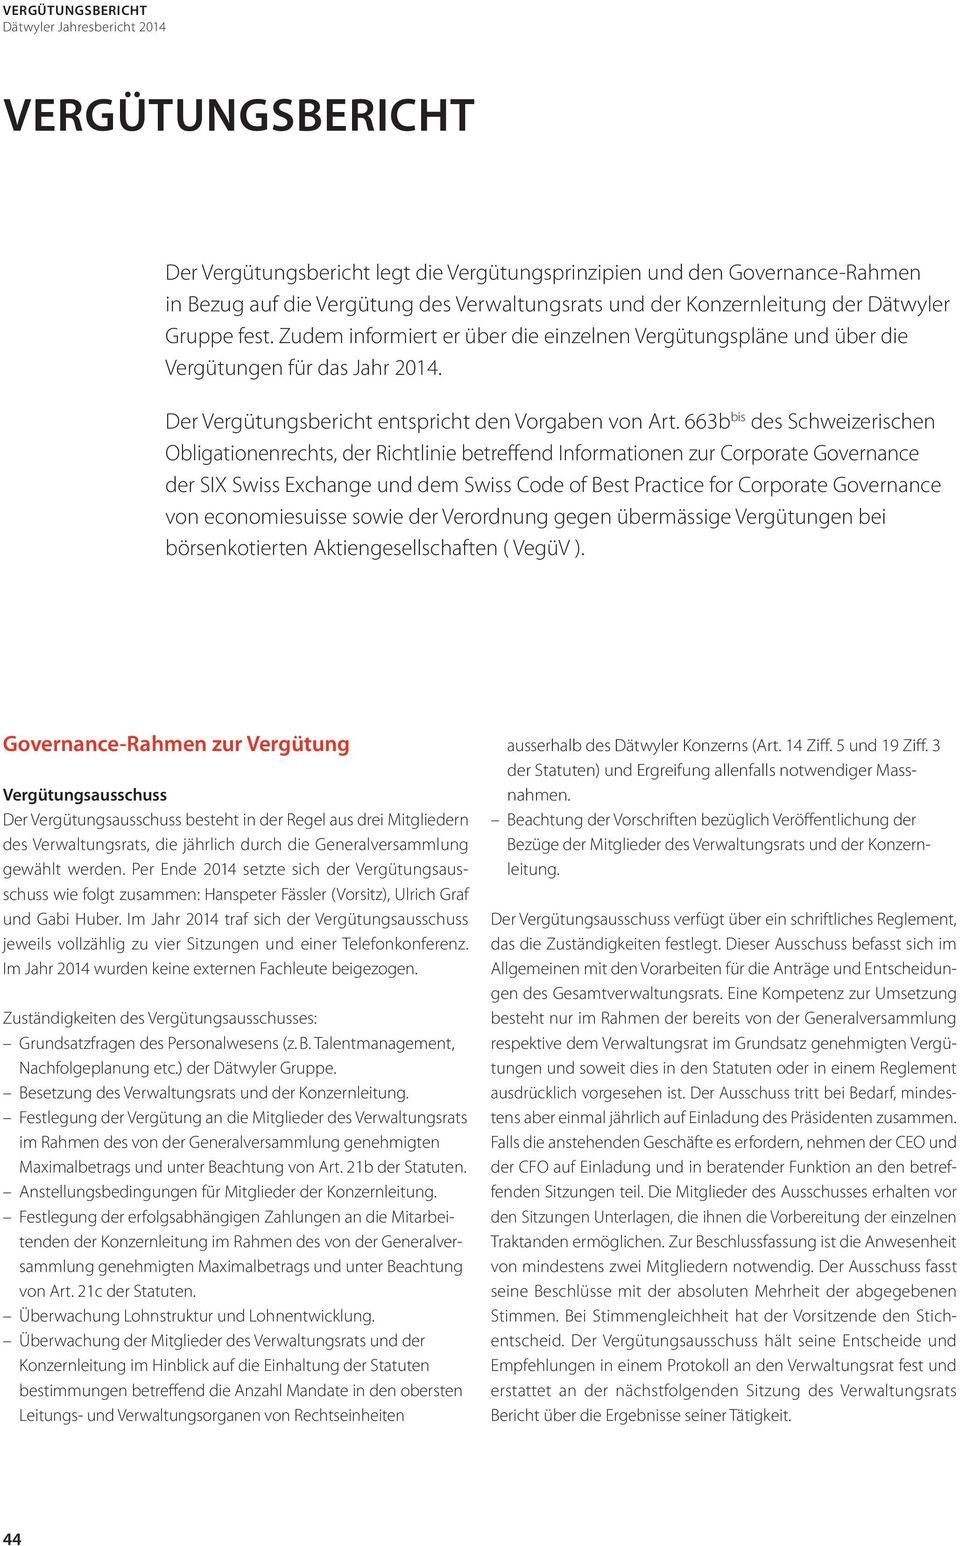 663b bis des Schweizerischen Obligationenrechts, der Richtlinie betreffend Informationen zur Corporate Governance der SIX Swiss Exchange und dem Swiss Code of Best Practice for Corporate Governance